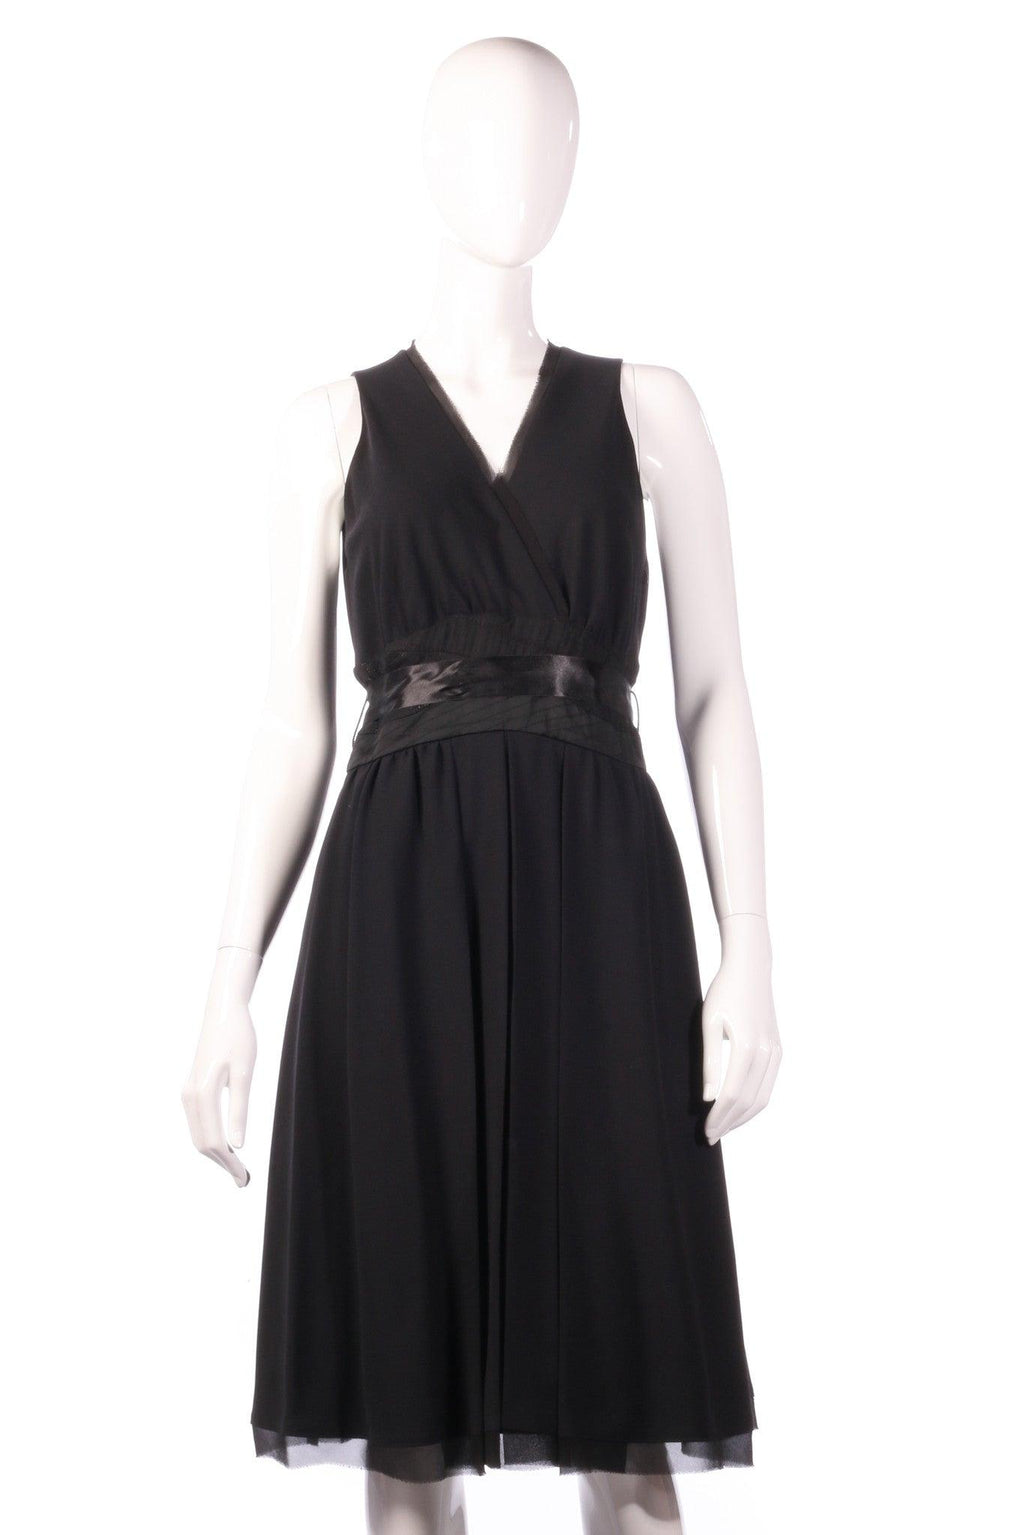 Dice Kayek black formal dress size 10